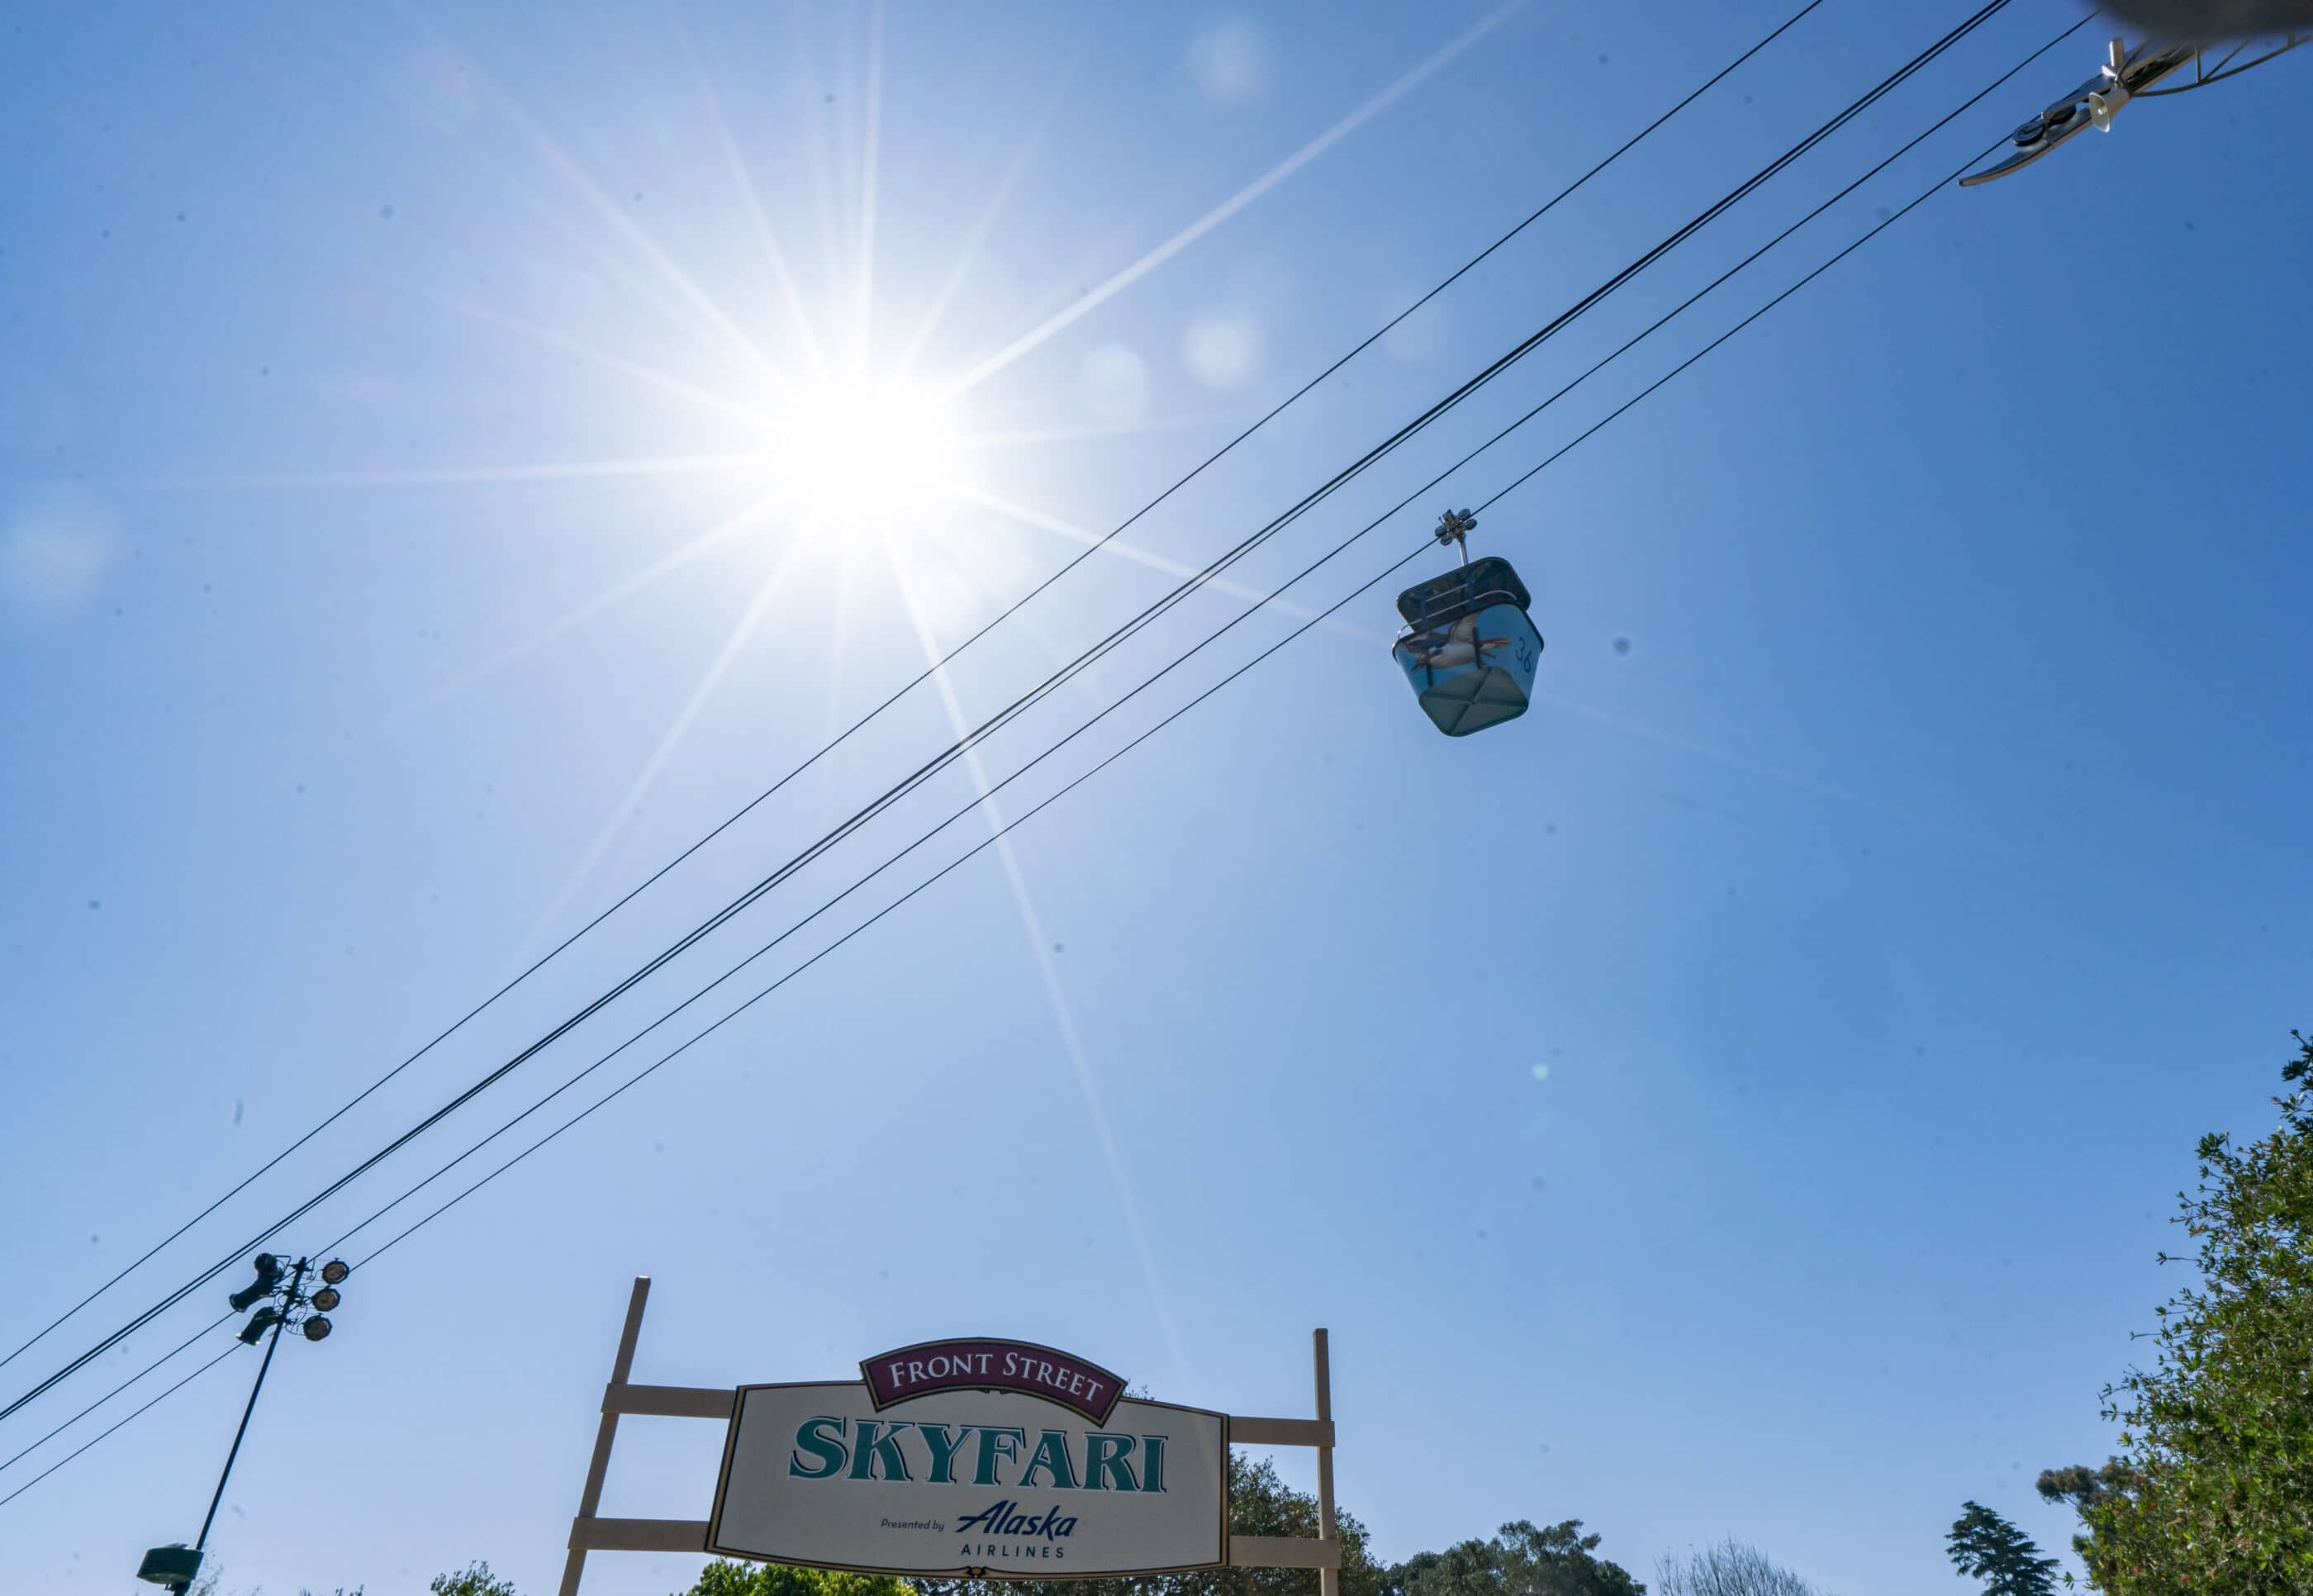 A Skyfari tram heads north on the cable lines against a blue sky.